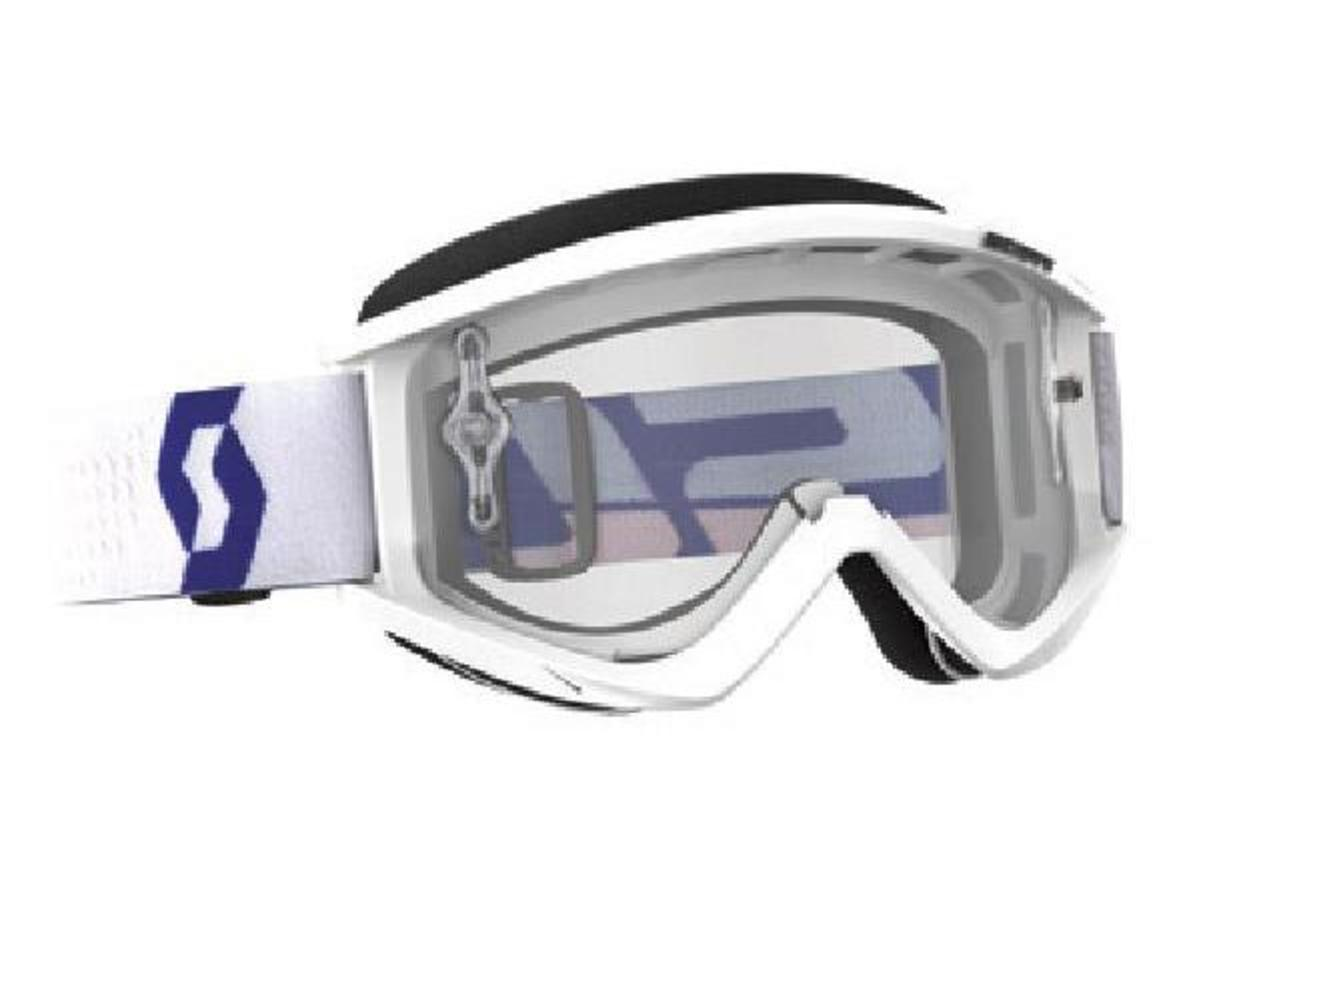 75d3af3facd Scott usa white with clear lens recoil xi goggles ebay jpg 1339x1001 Scott  usa goggles